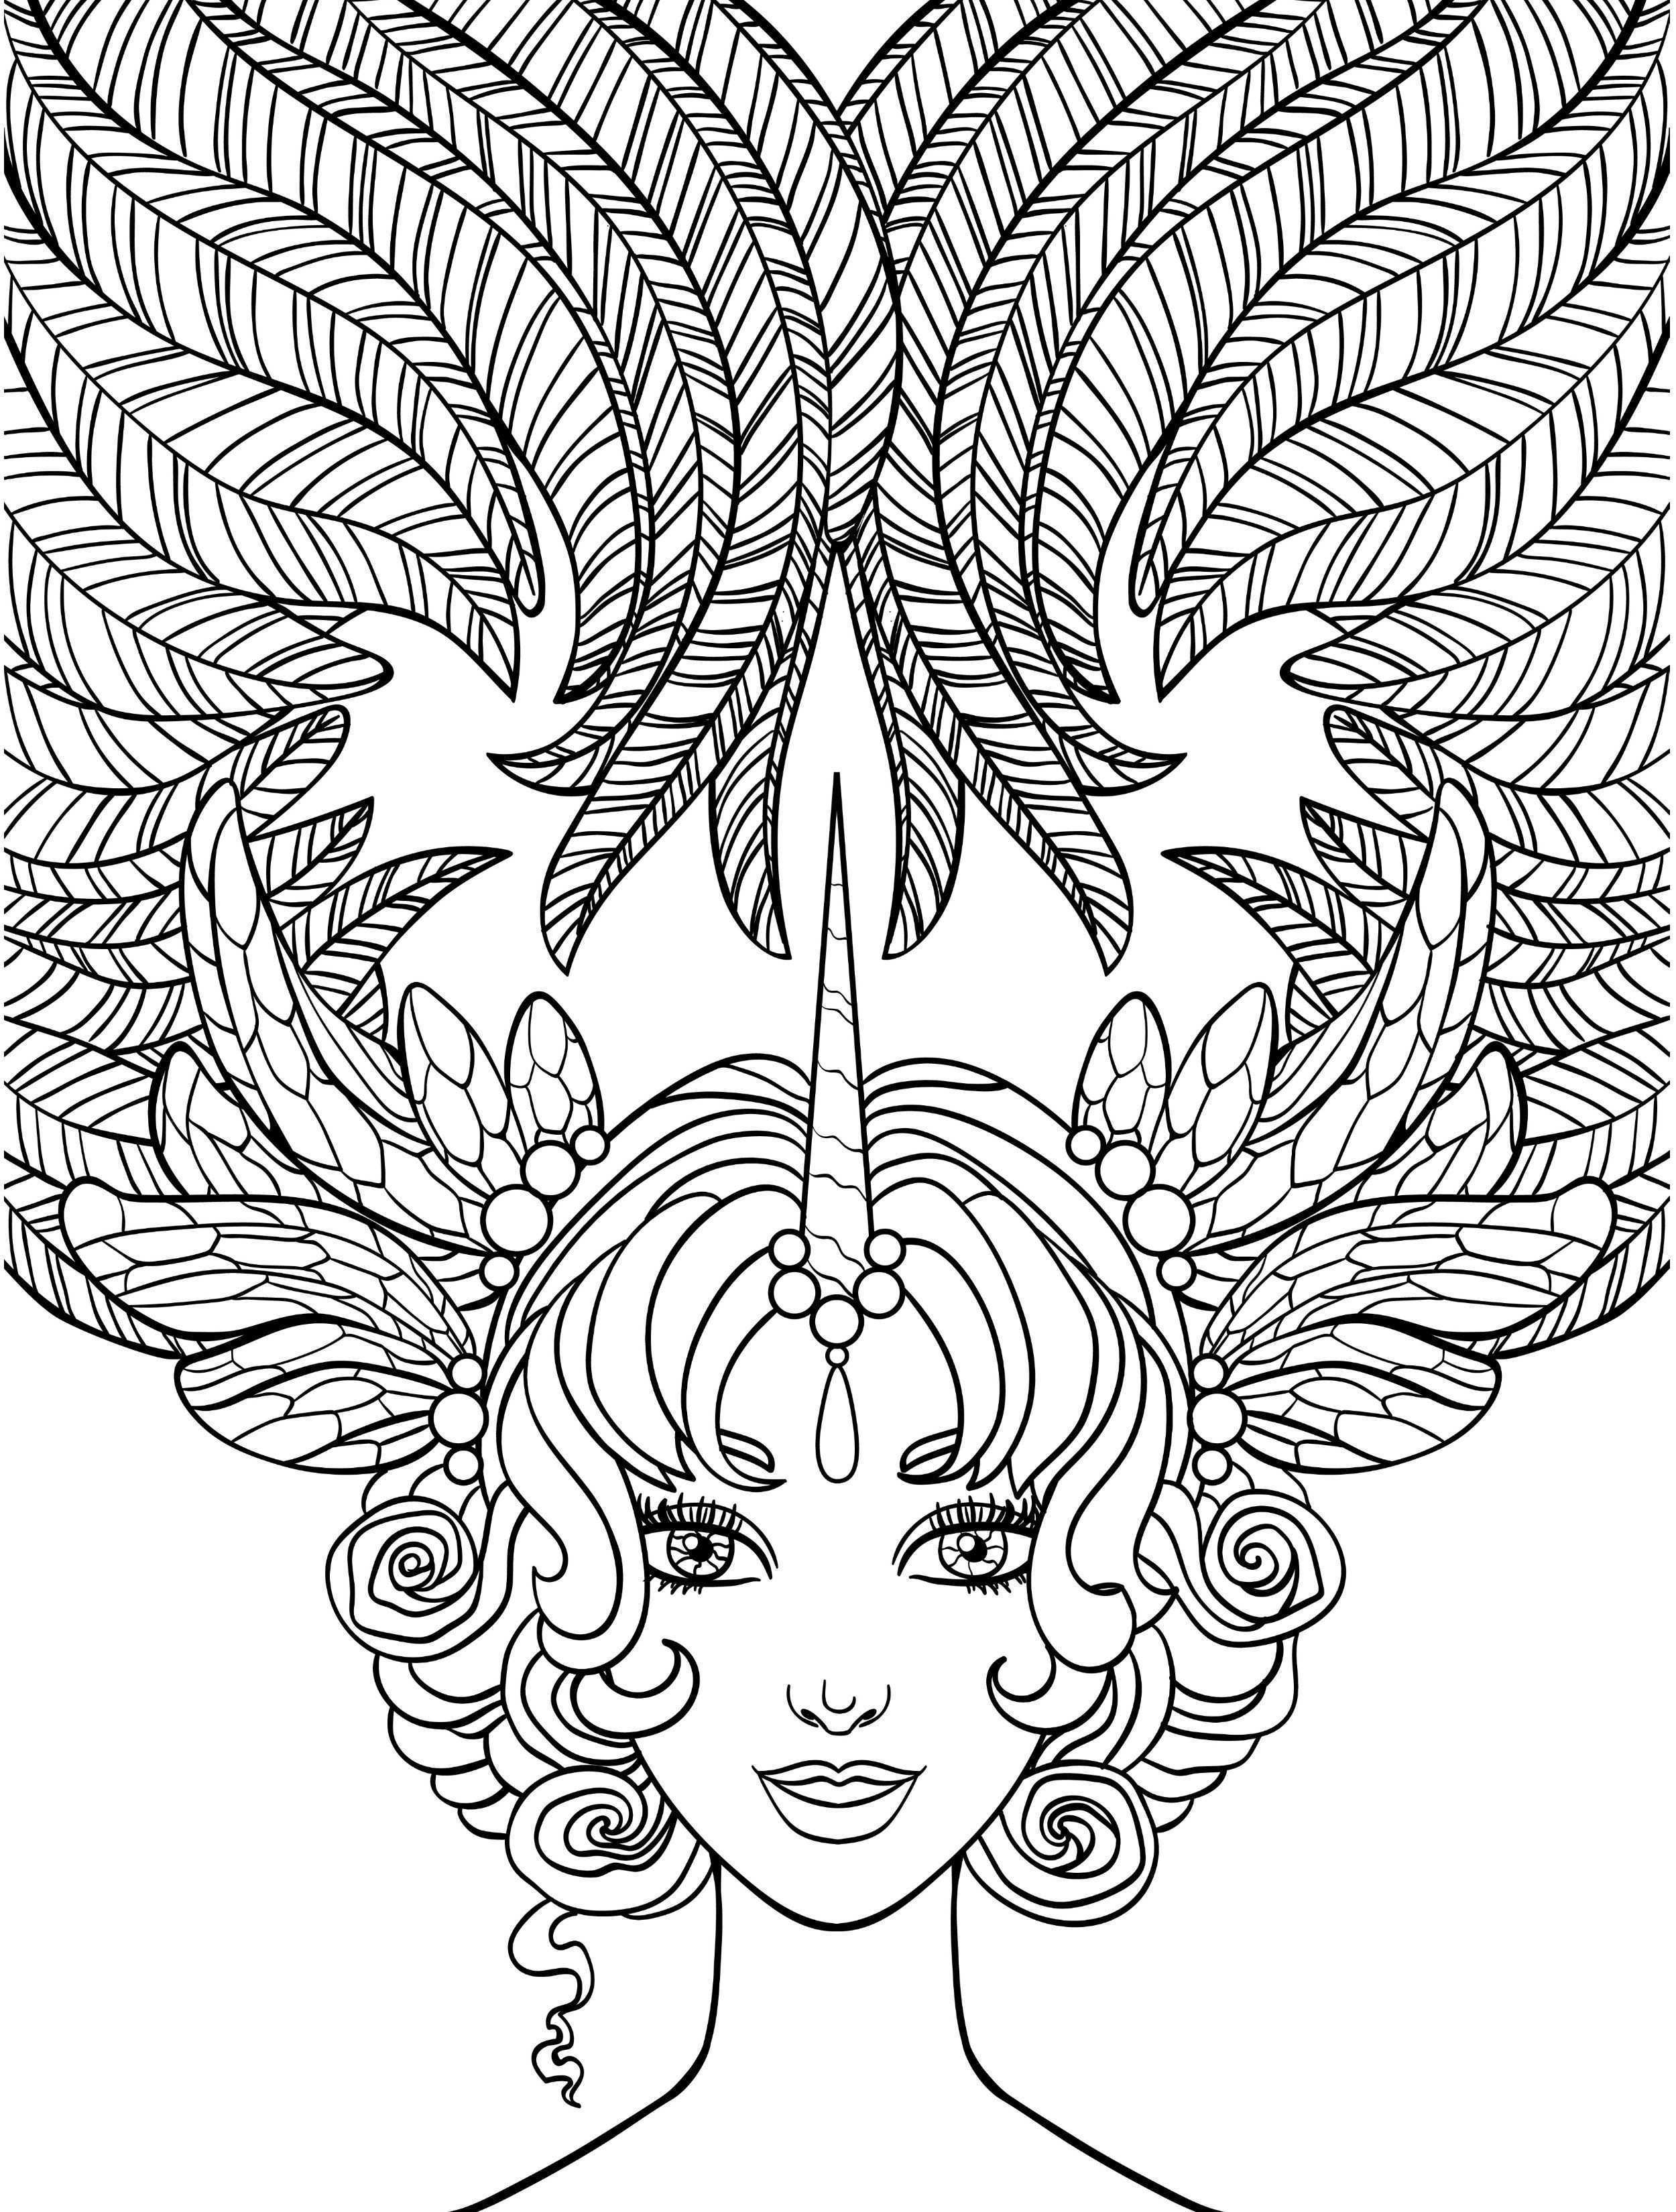 Coloring Pages Coloring Pages Fresh Fresh S S Media Cache Ak0 Pinimg